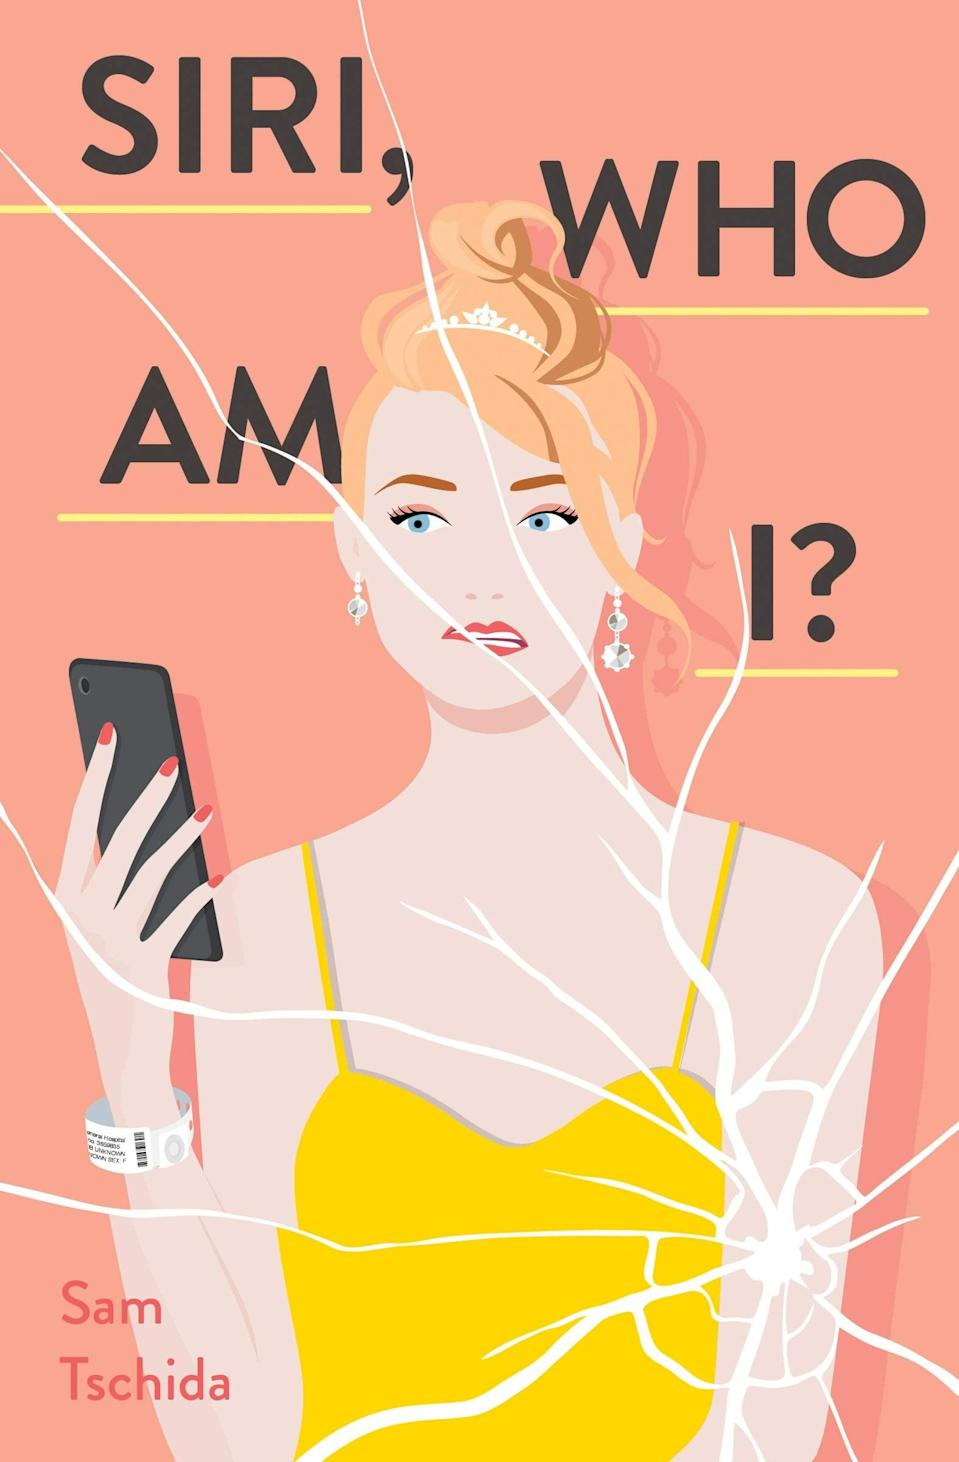 <p>What if you had to piece together the story of your life using nothing but your phone and social media accounts? That's the hook of <span><strong>Siri, Who Am I?</strong></span> by Sam Tschida. After a head injury leaves Instagram influencer Mia with amnesia, she uses her online presence to piece together the story of her life, and the more she digs, the less impressed she is by the person in all of those carefully staged photos. </p> <p><em>Out Jan. 12</em></p>